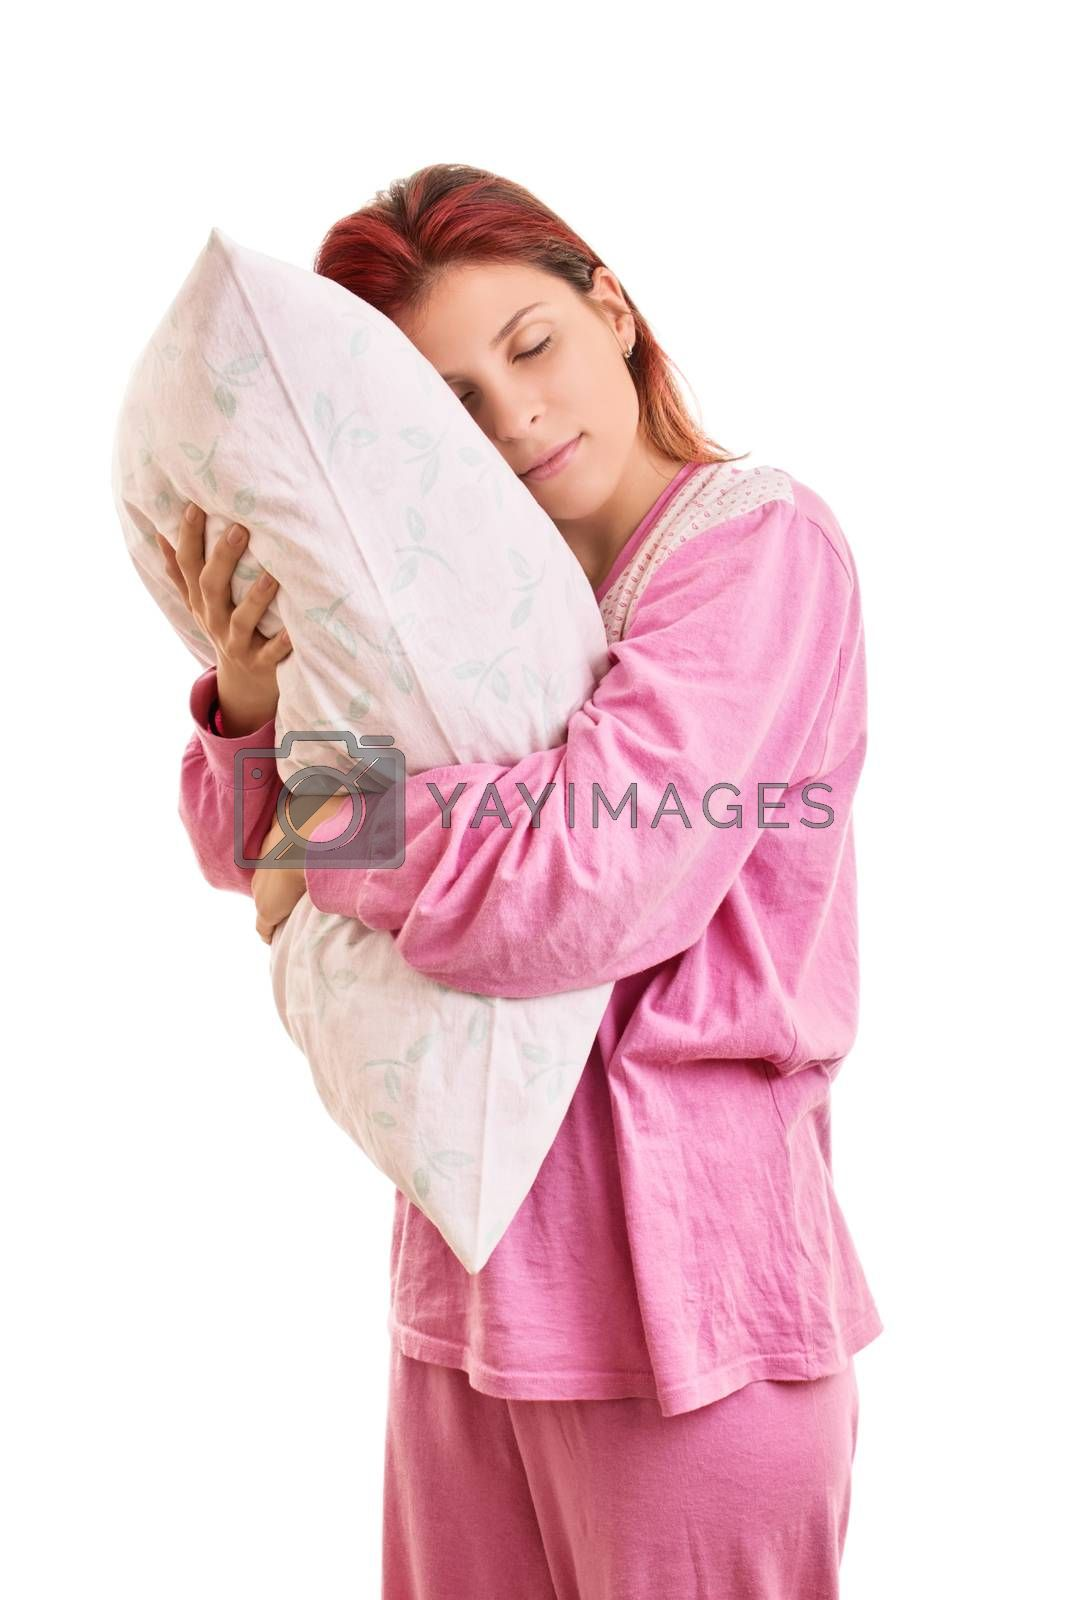 My comfortable pillow. Beautiful young girl in pink pajamas with closed eyes hugging a pillow, isolated on white background.